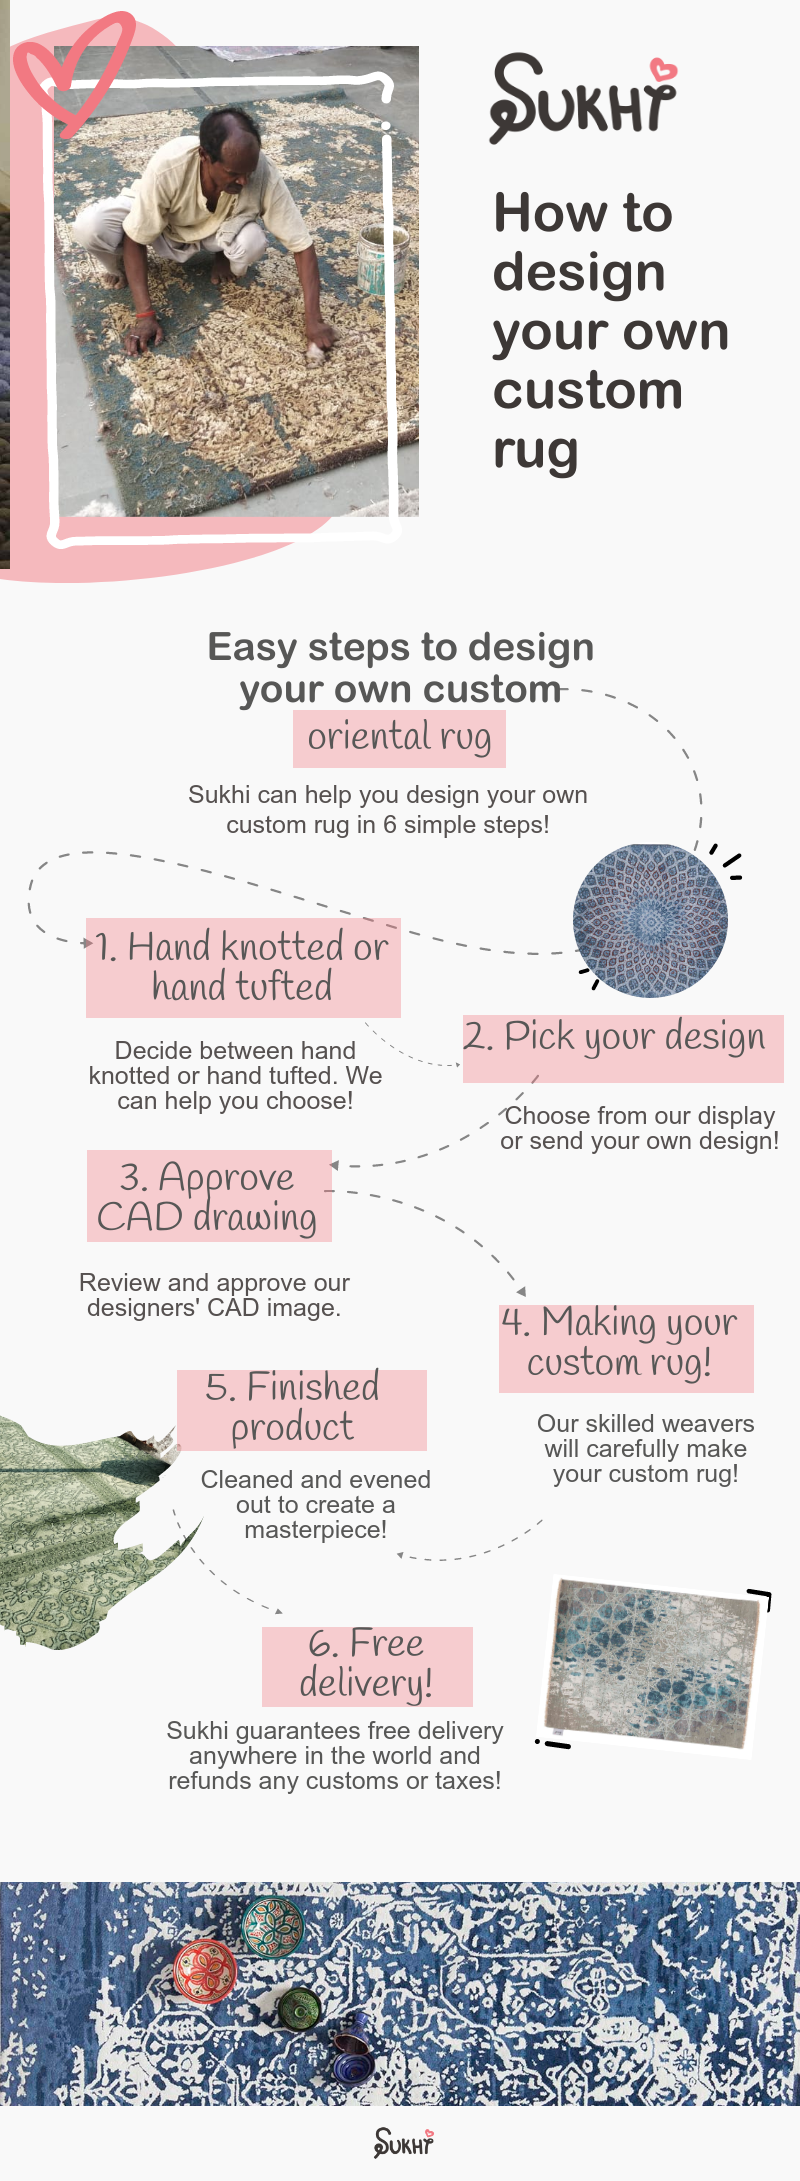 How To Design Your Own Custom Rug